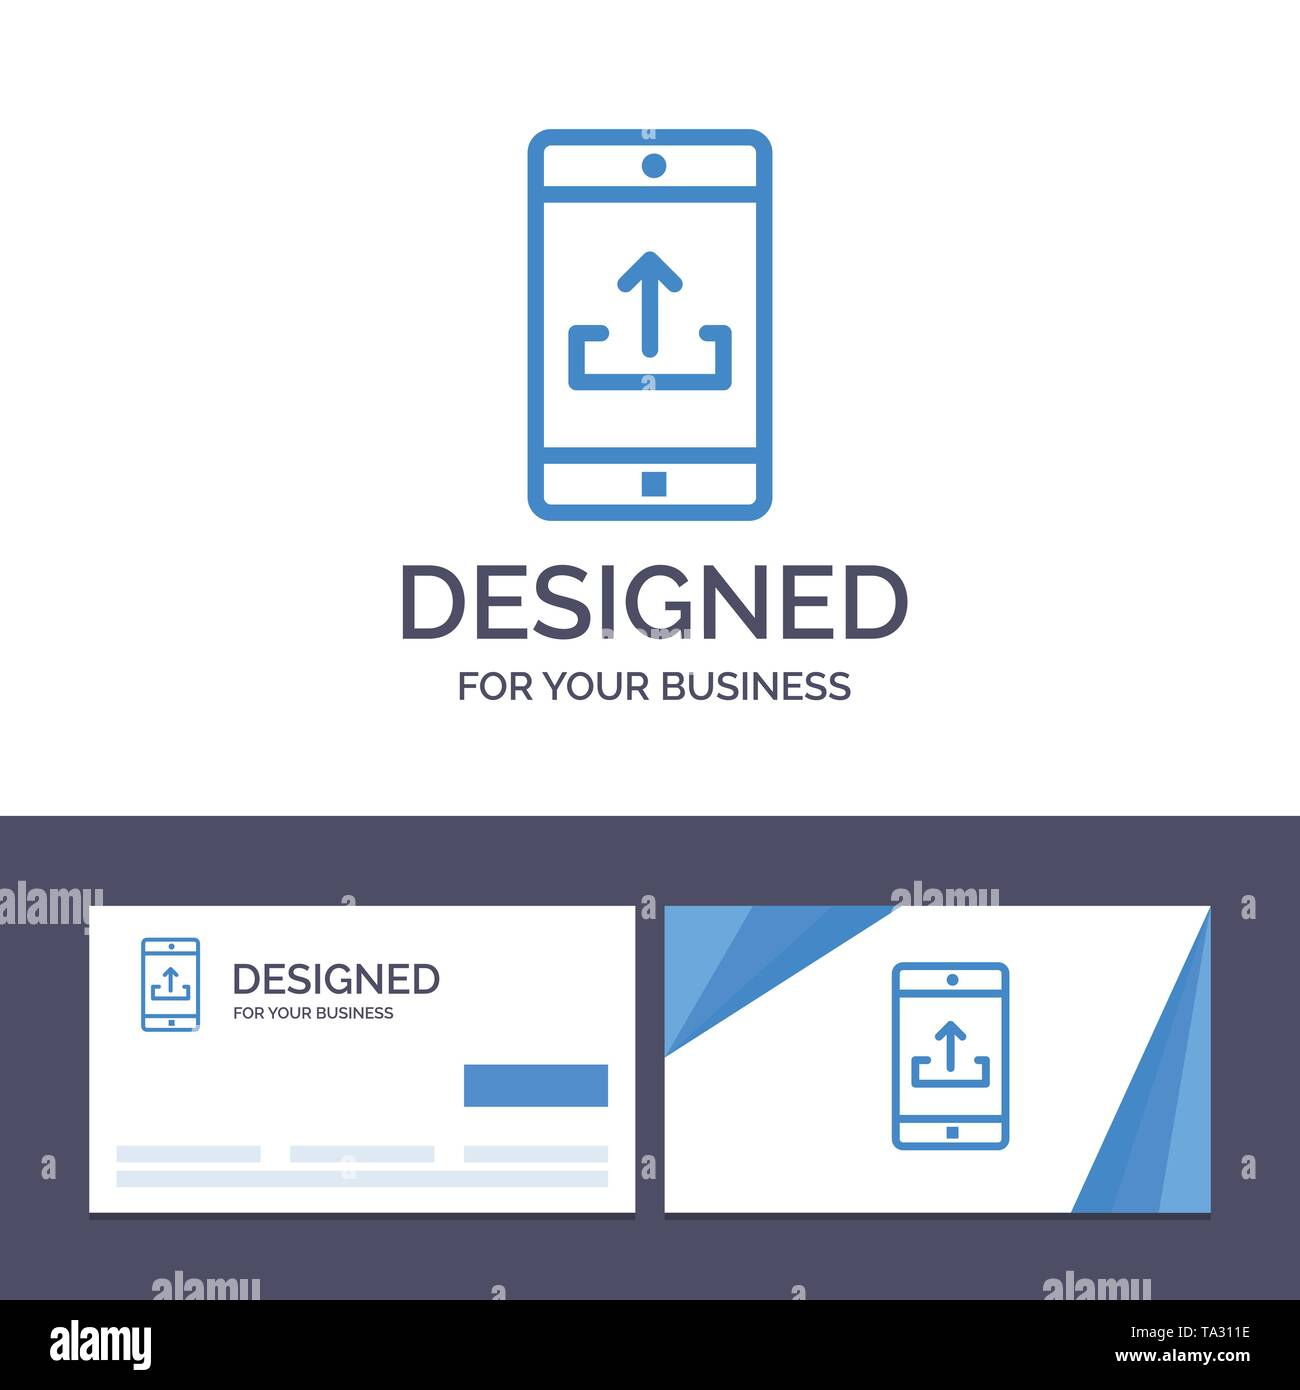 Creative Business Card and Logo template Application, Mobile, Mobile Application, Smartphone, Upload Vector Illustration - Stock Image